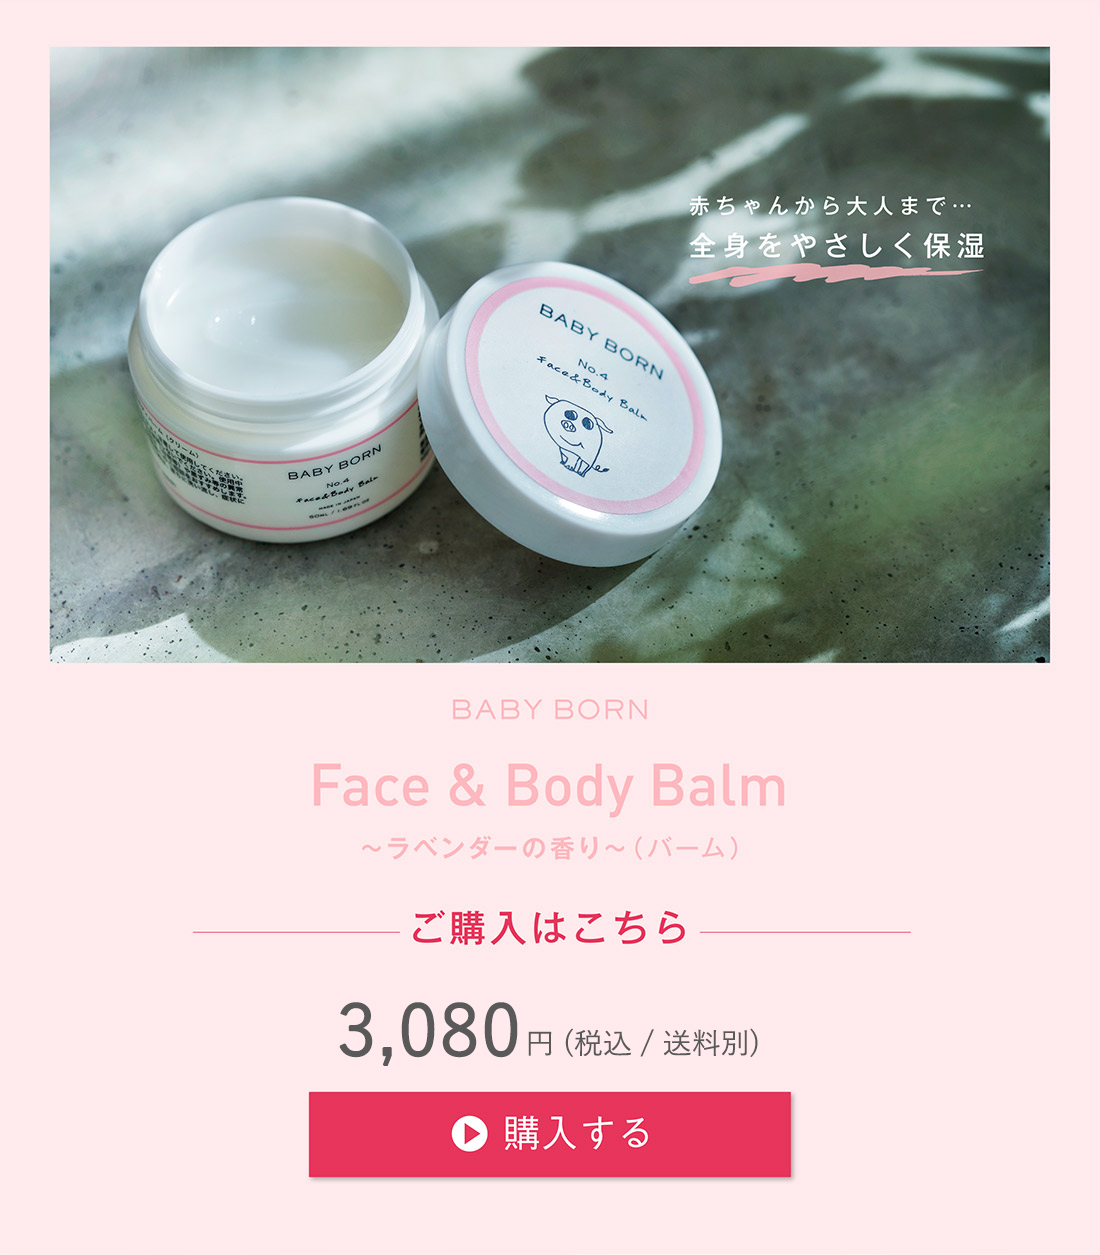 BABY BORN Face&Body Balm